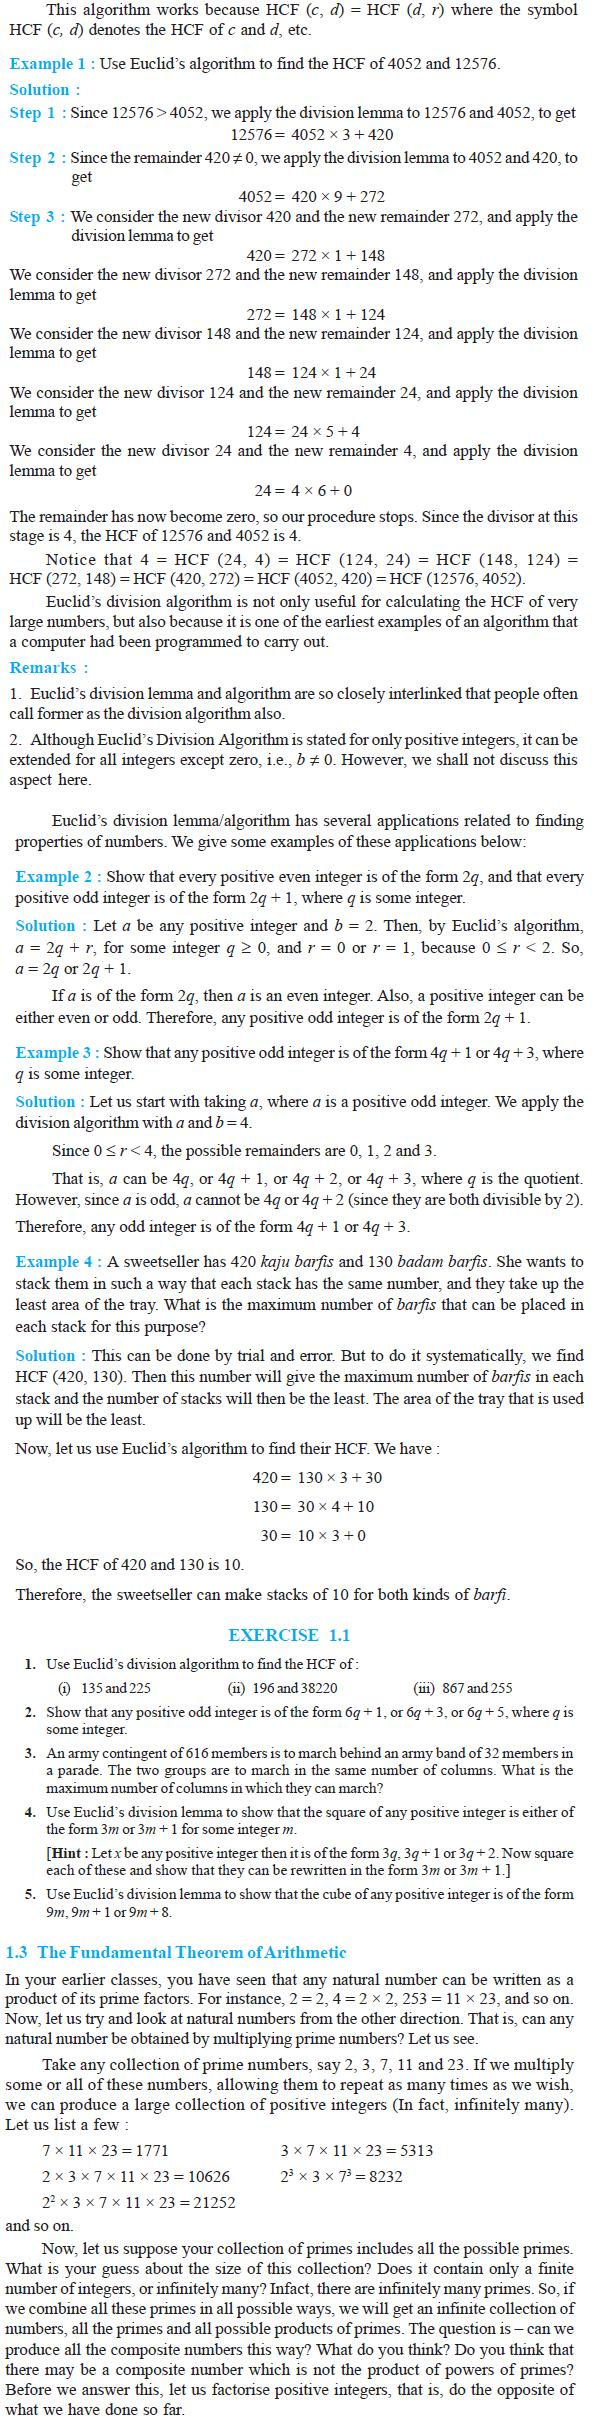 NCERT Class X Maths: Chapter 1 - Real Numbers